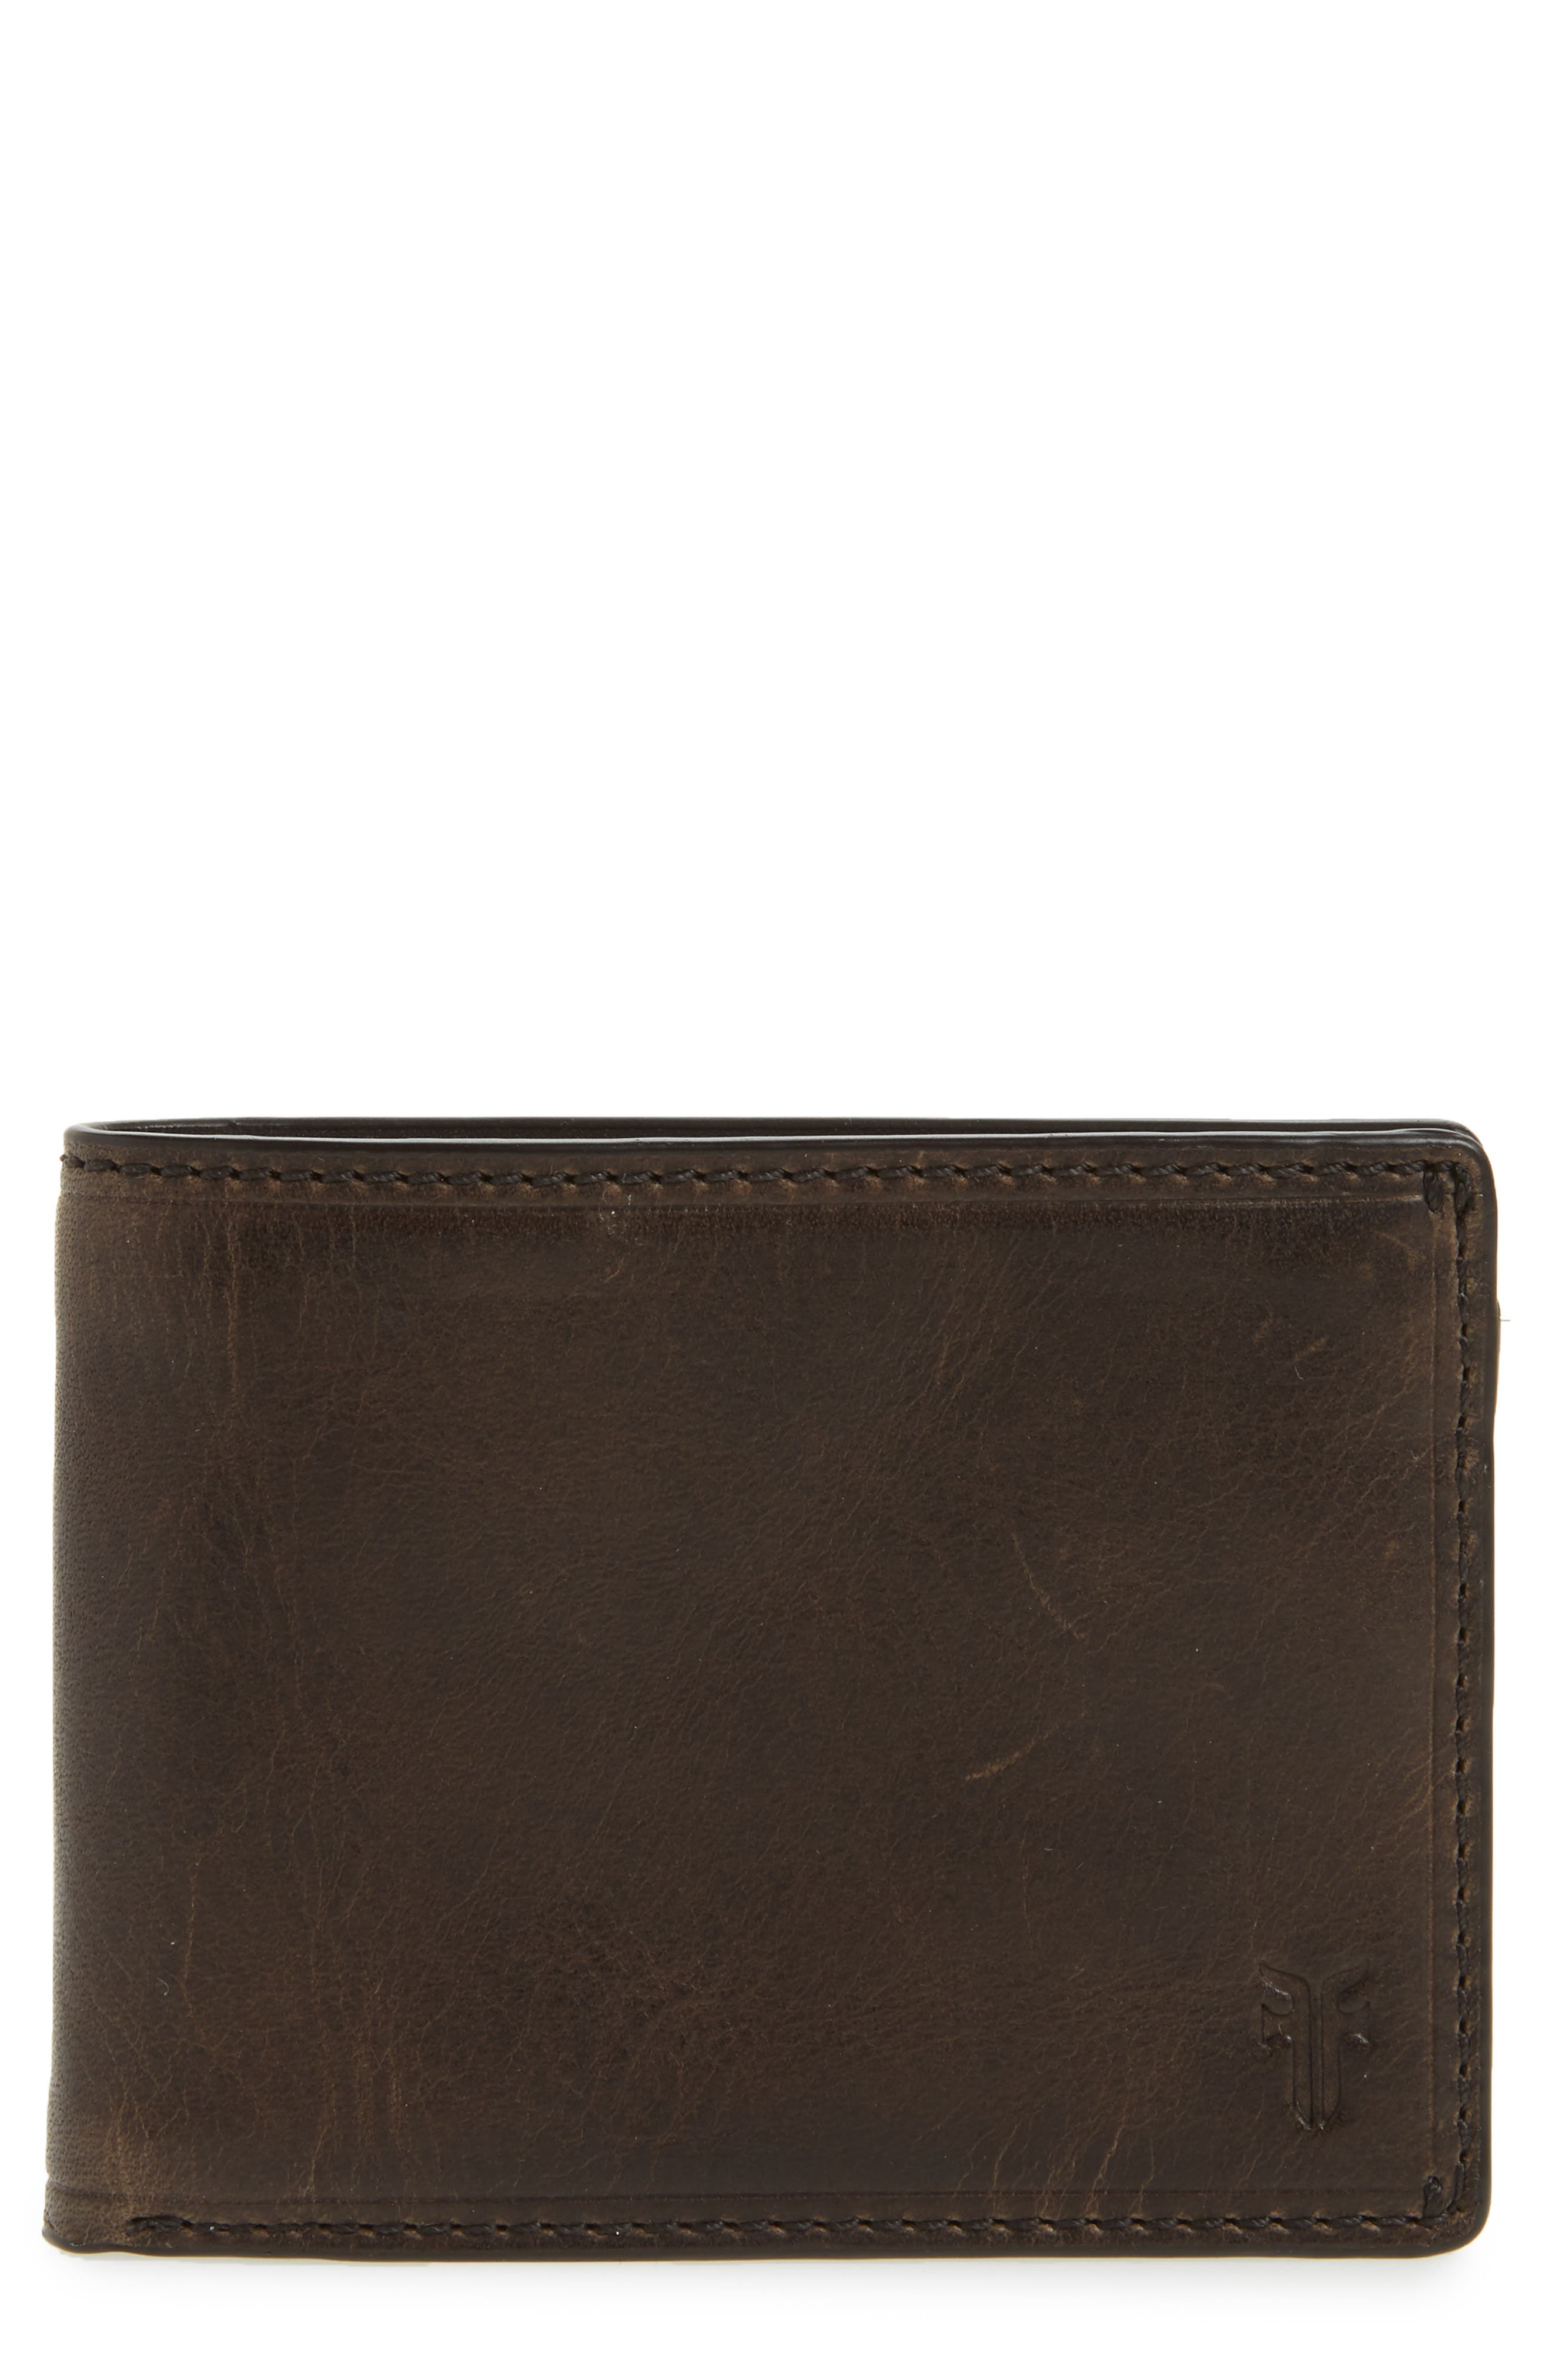 Logan Leather Wallet,                         Main,                         color, SLATE